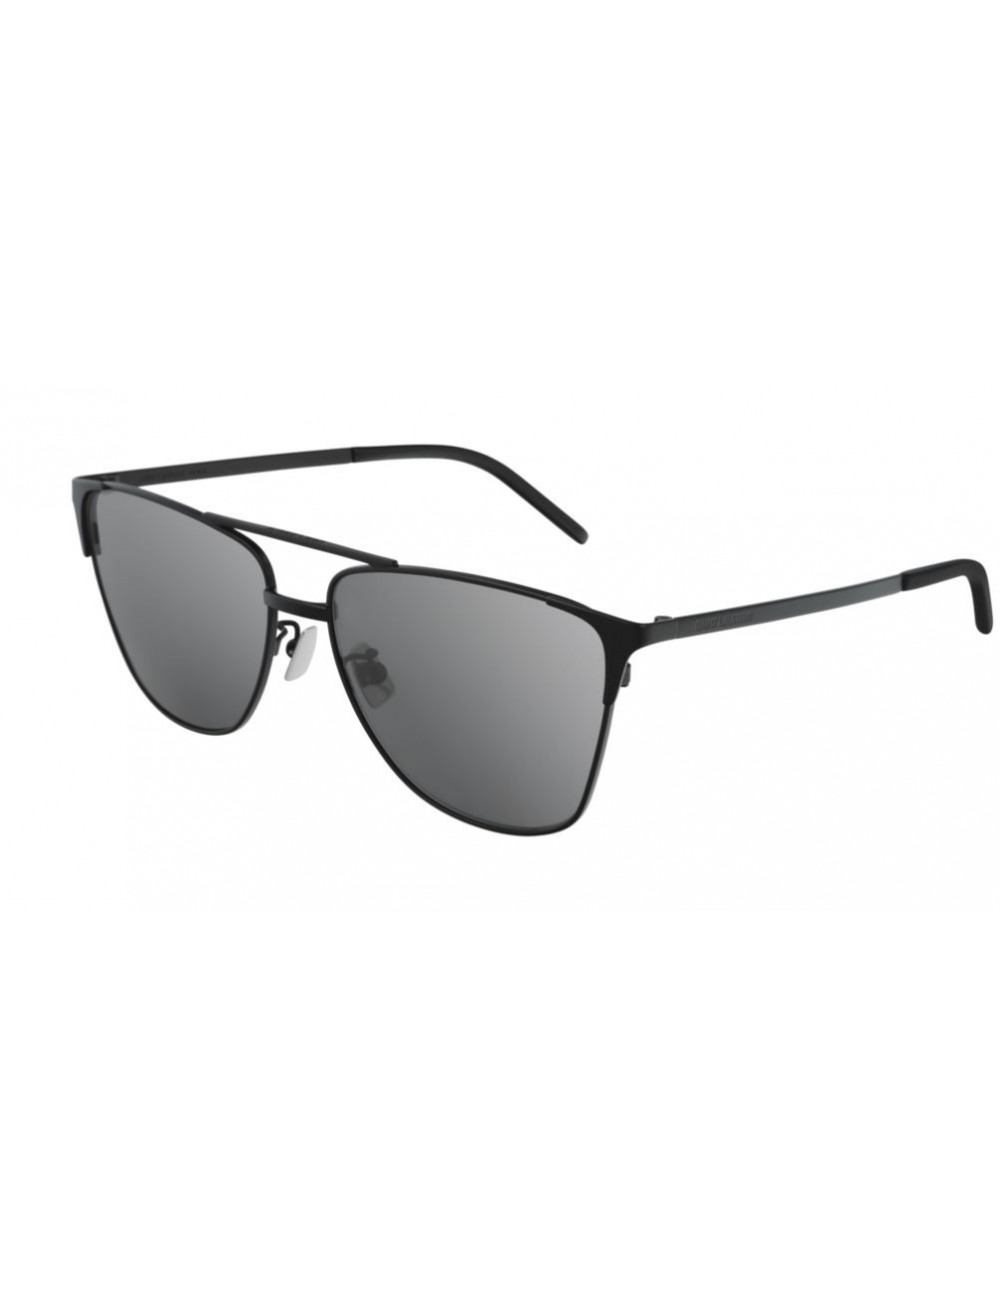 Lunettes de soleil Saint Laurent New Wave SL 280 | Revendeur Agréé Saint Laurent | product_reduce_price